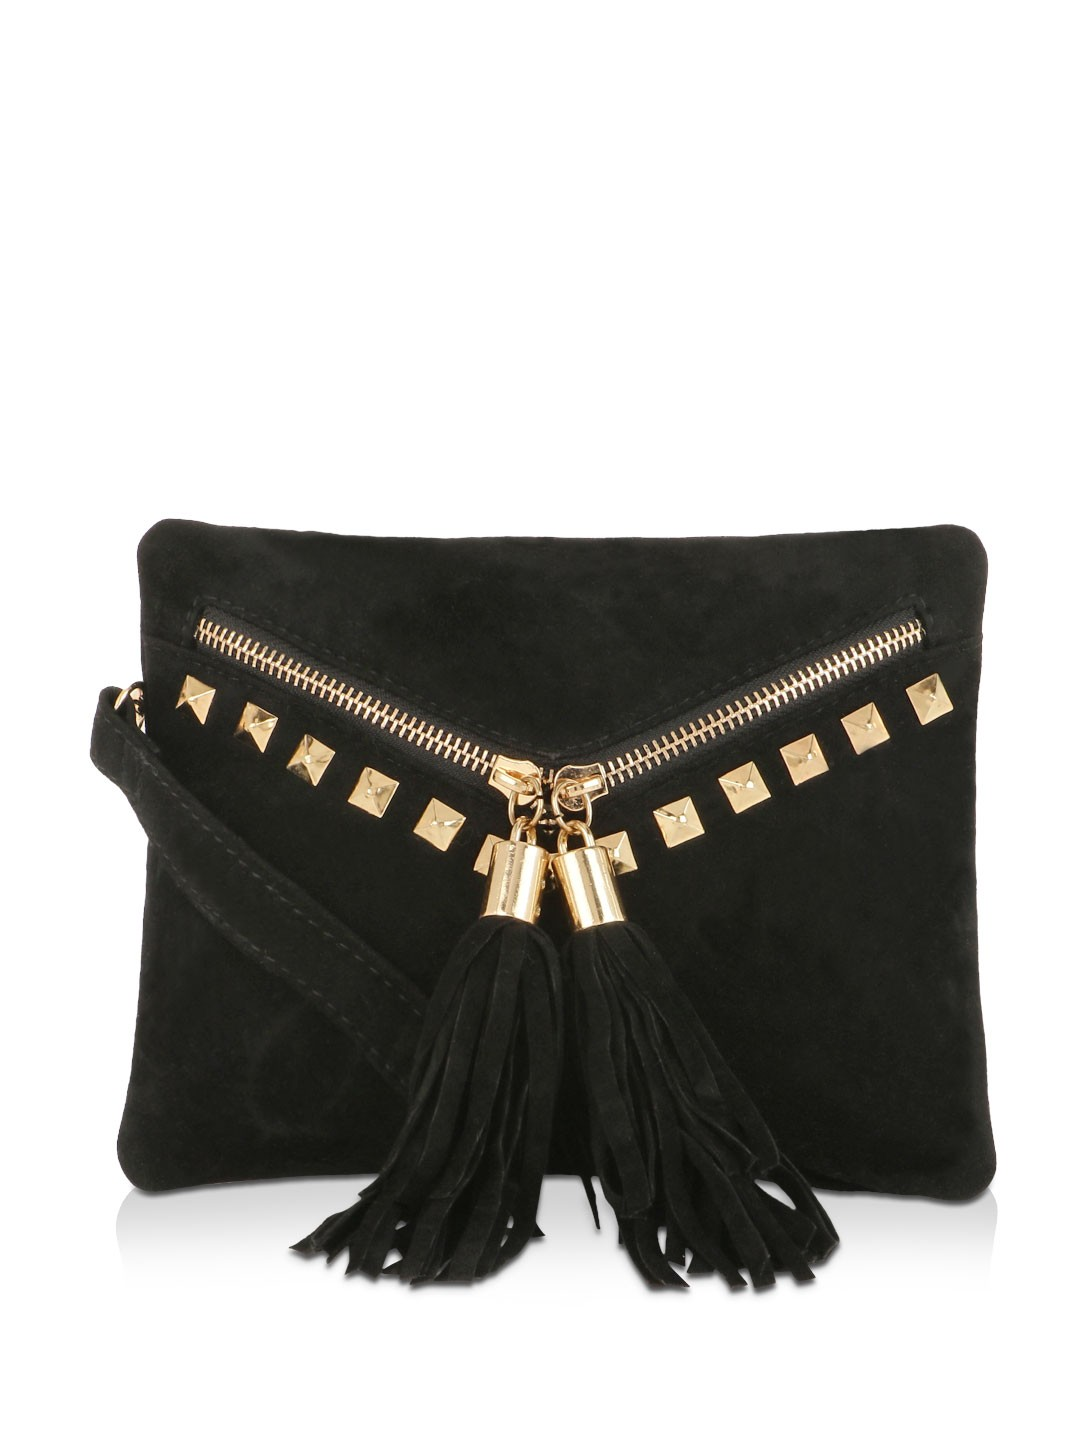 Buy KOOVS Studded Envelope Sling Bag For Women - Women's Black ...